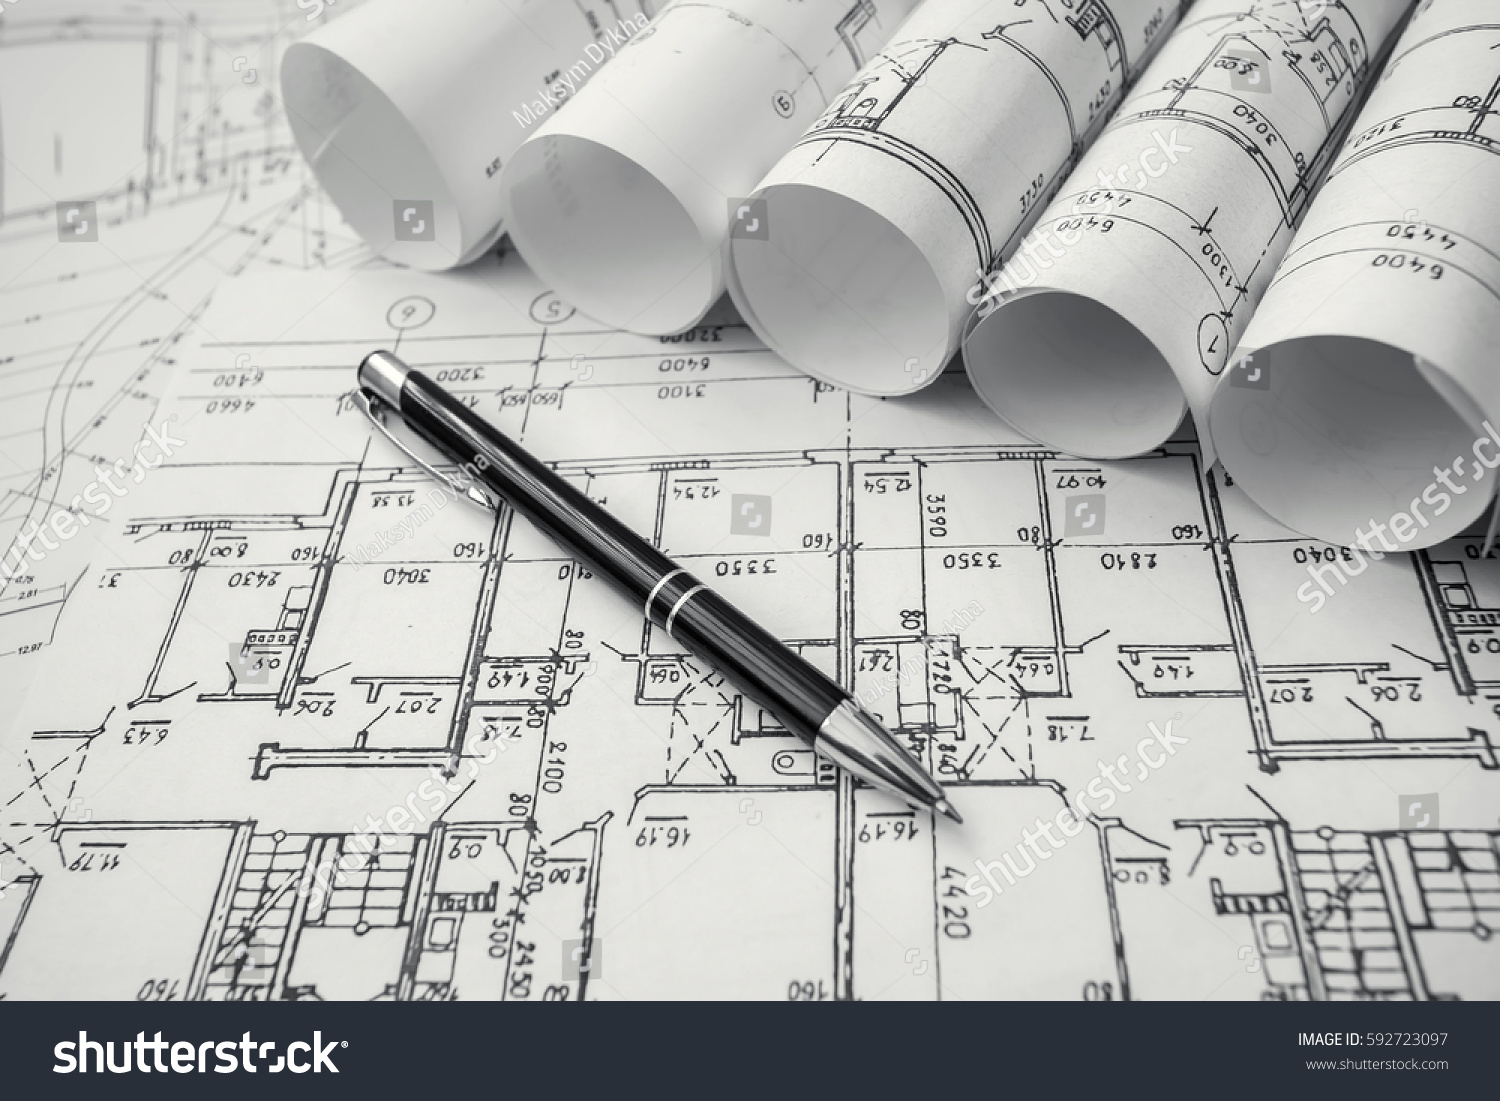 Architect Workplace Architectural Project Blueprints Blueprint Stock ...